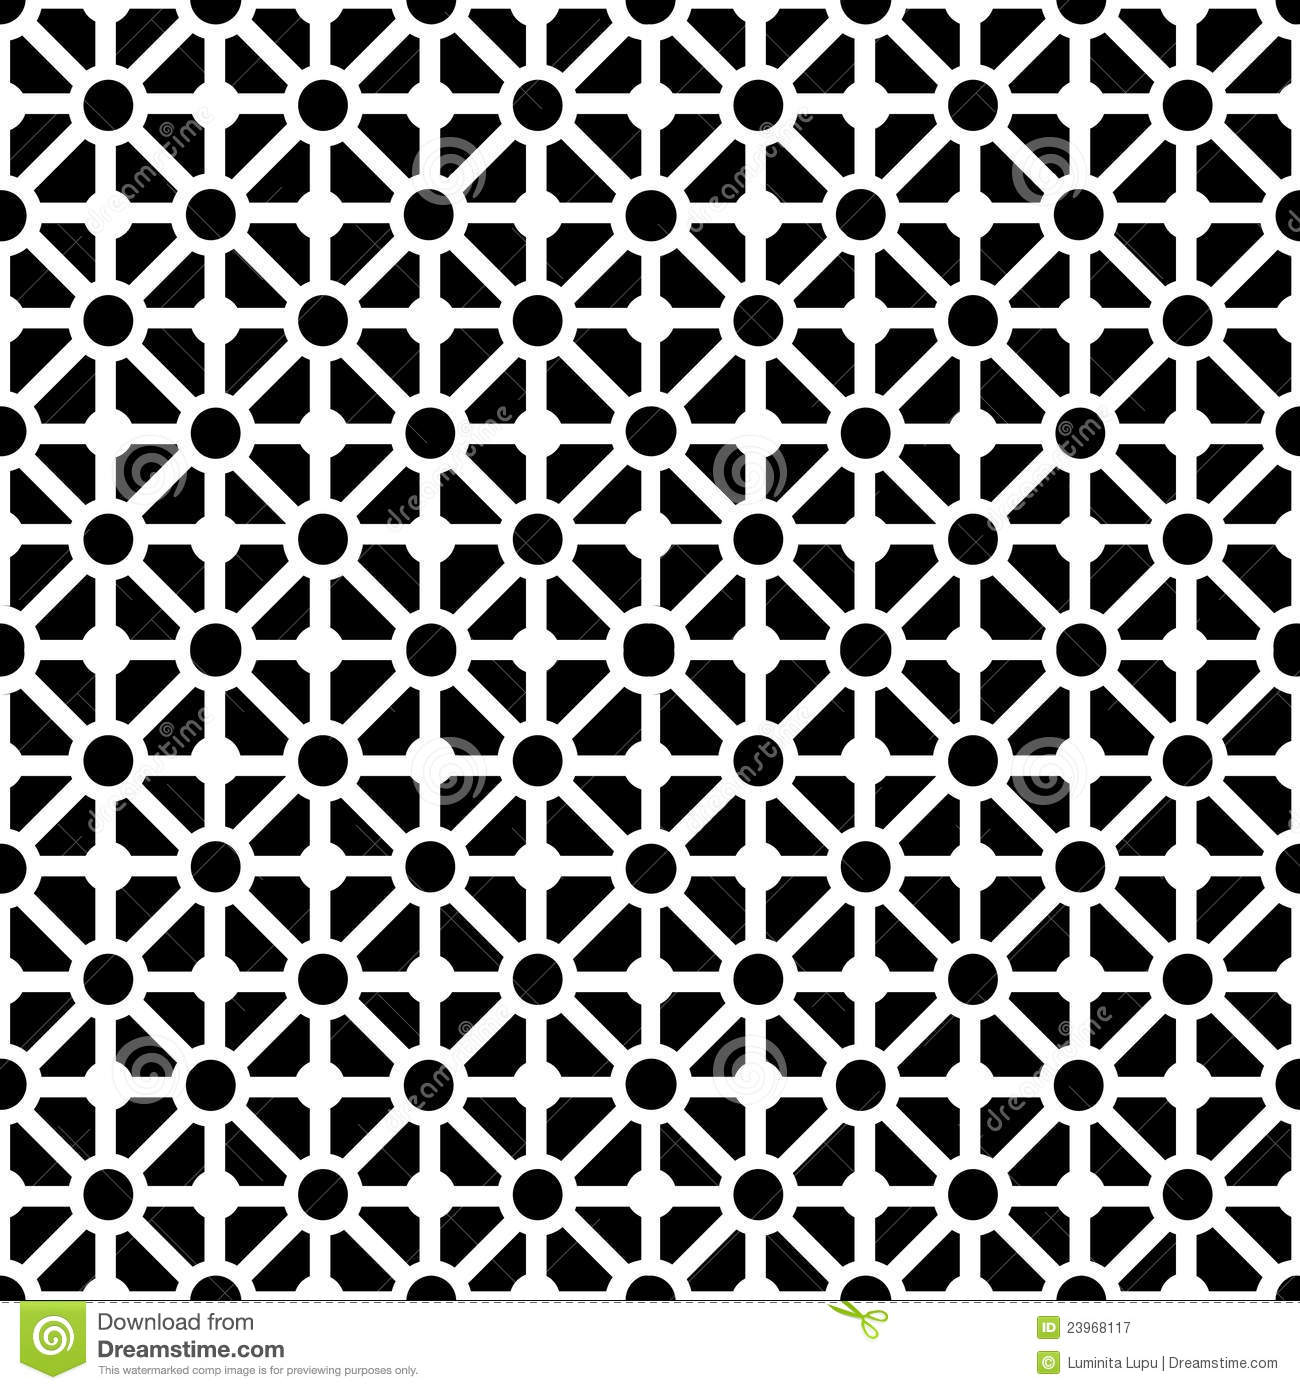 Draw A Floor Plan To Scale Geometric Seamless Pattern In Black And White Royalty Free